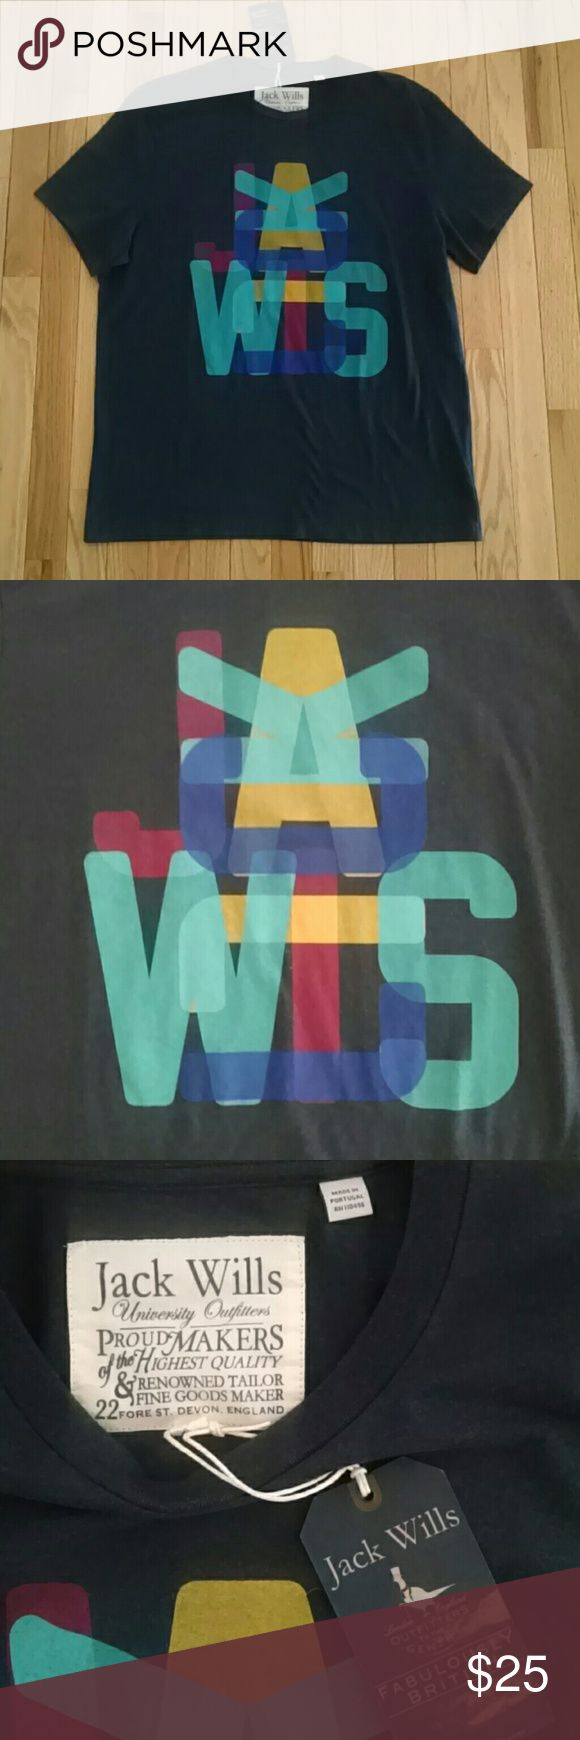 NWT Jack Wills Men's Graphic T Shirt XL Navy blue short sleeve tee with multicolored Jack Wills graphic. In excellent condition. Comes from a smoke free, pet free home. Jack Wills Shirts Tees - Short Sleeve